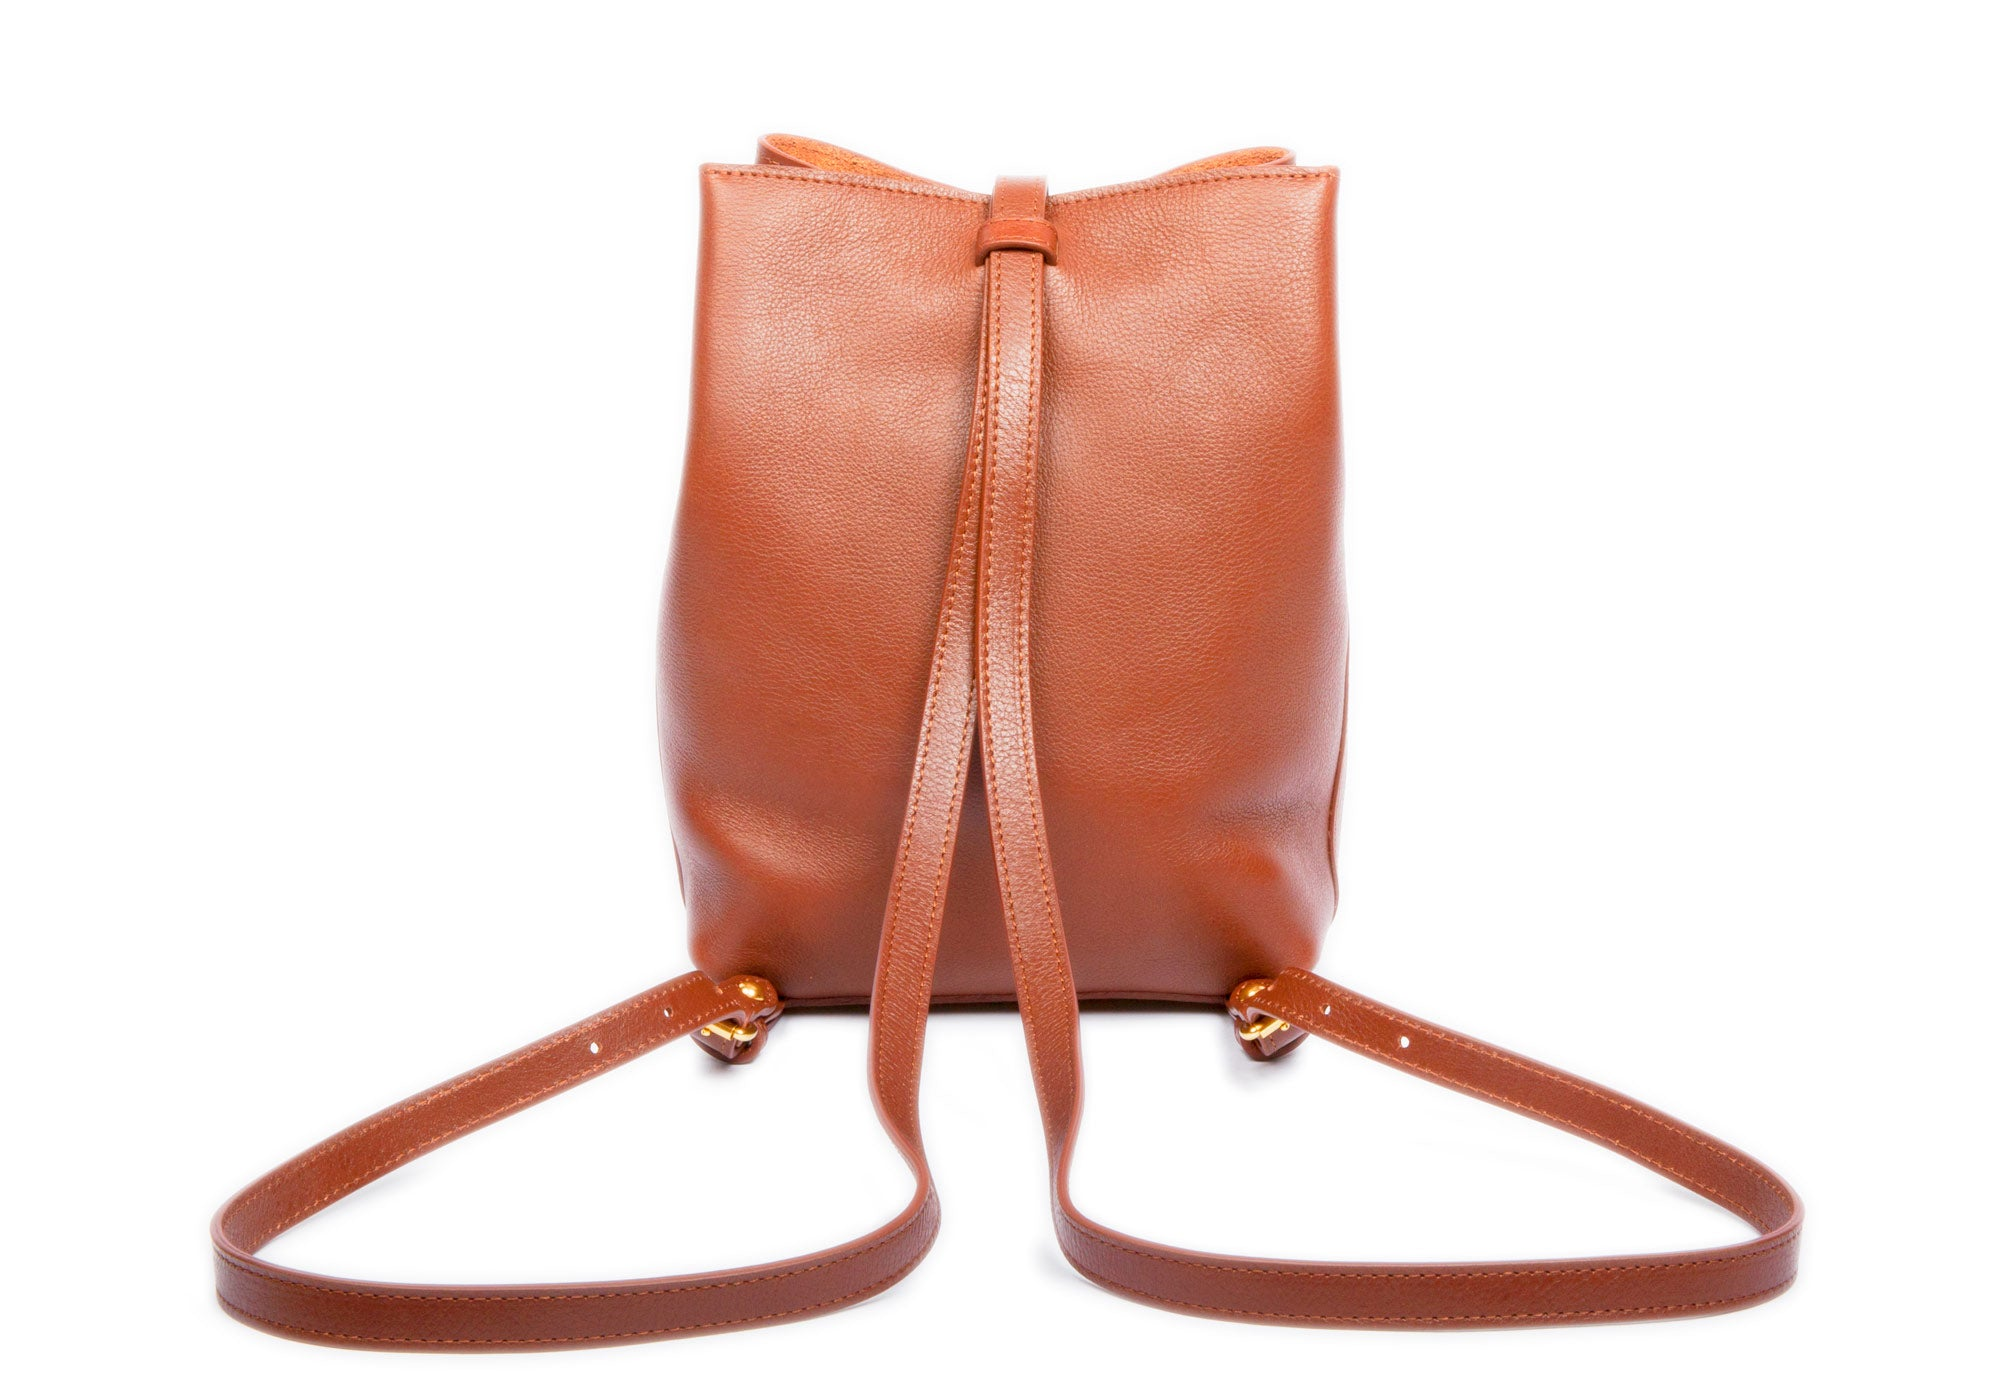 The Mini Sling Backpack Saddle Tan